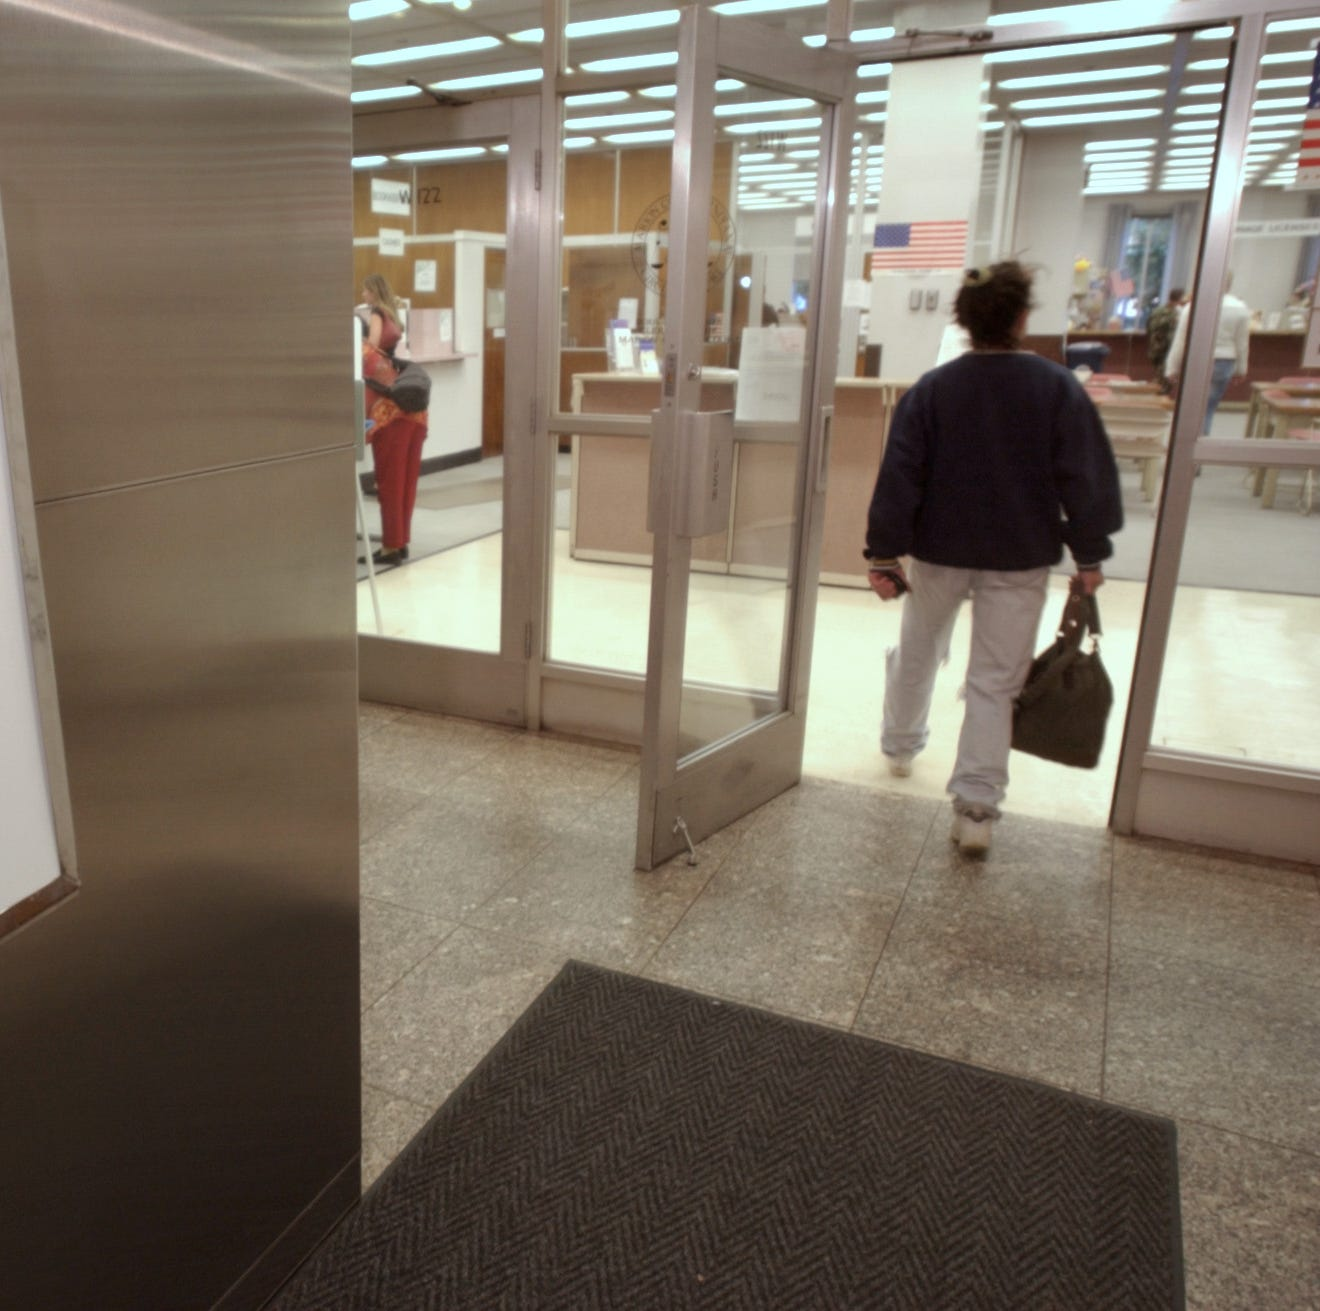 No-reason absentee voting option starts today in Michigan